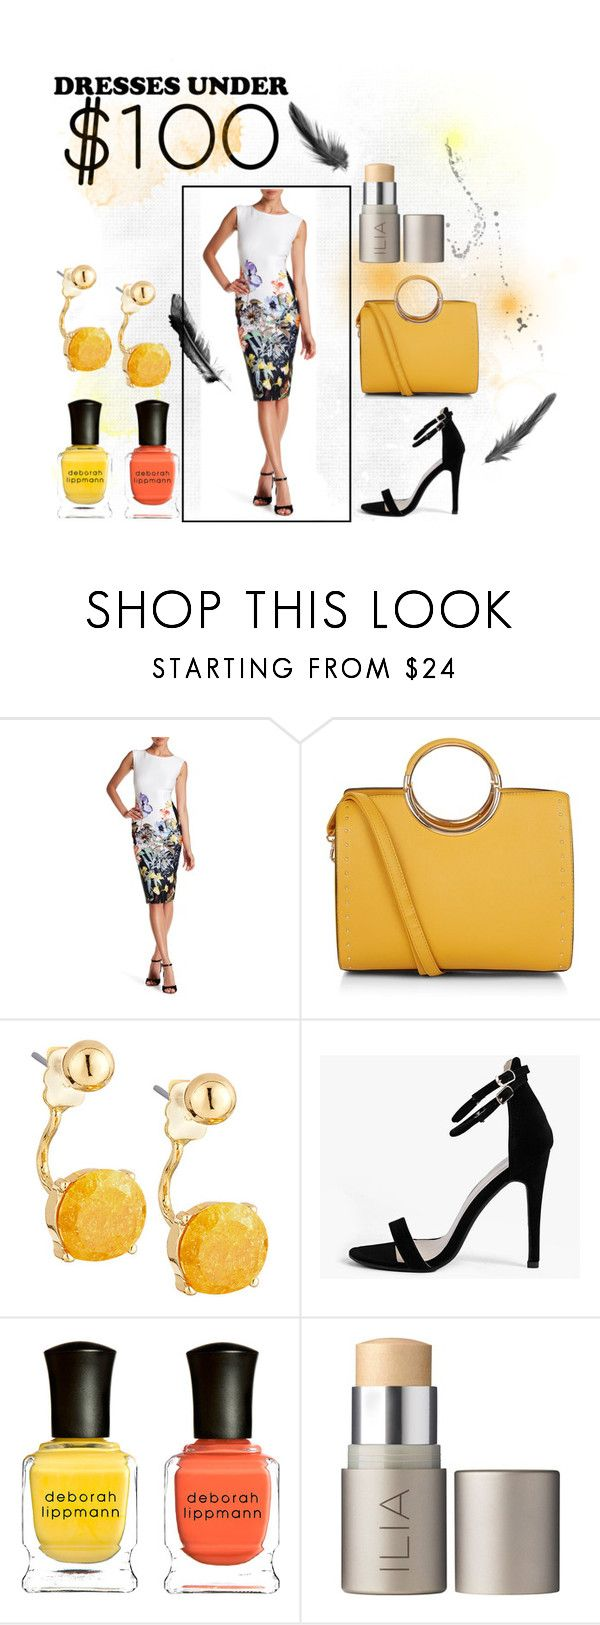 """""""This outfit is goals!!Dress under $100 and stylish :)"""" by memermaid70 ❤ liked on Polyvore featuring S.L. Fashions, New Look, Lydell NYC, Boohoo, Deborah Lippmann and Ilia"""